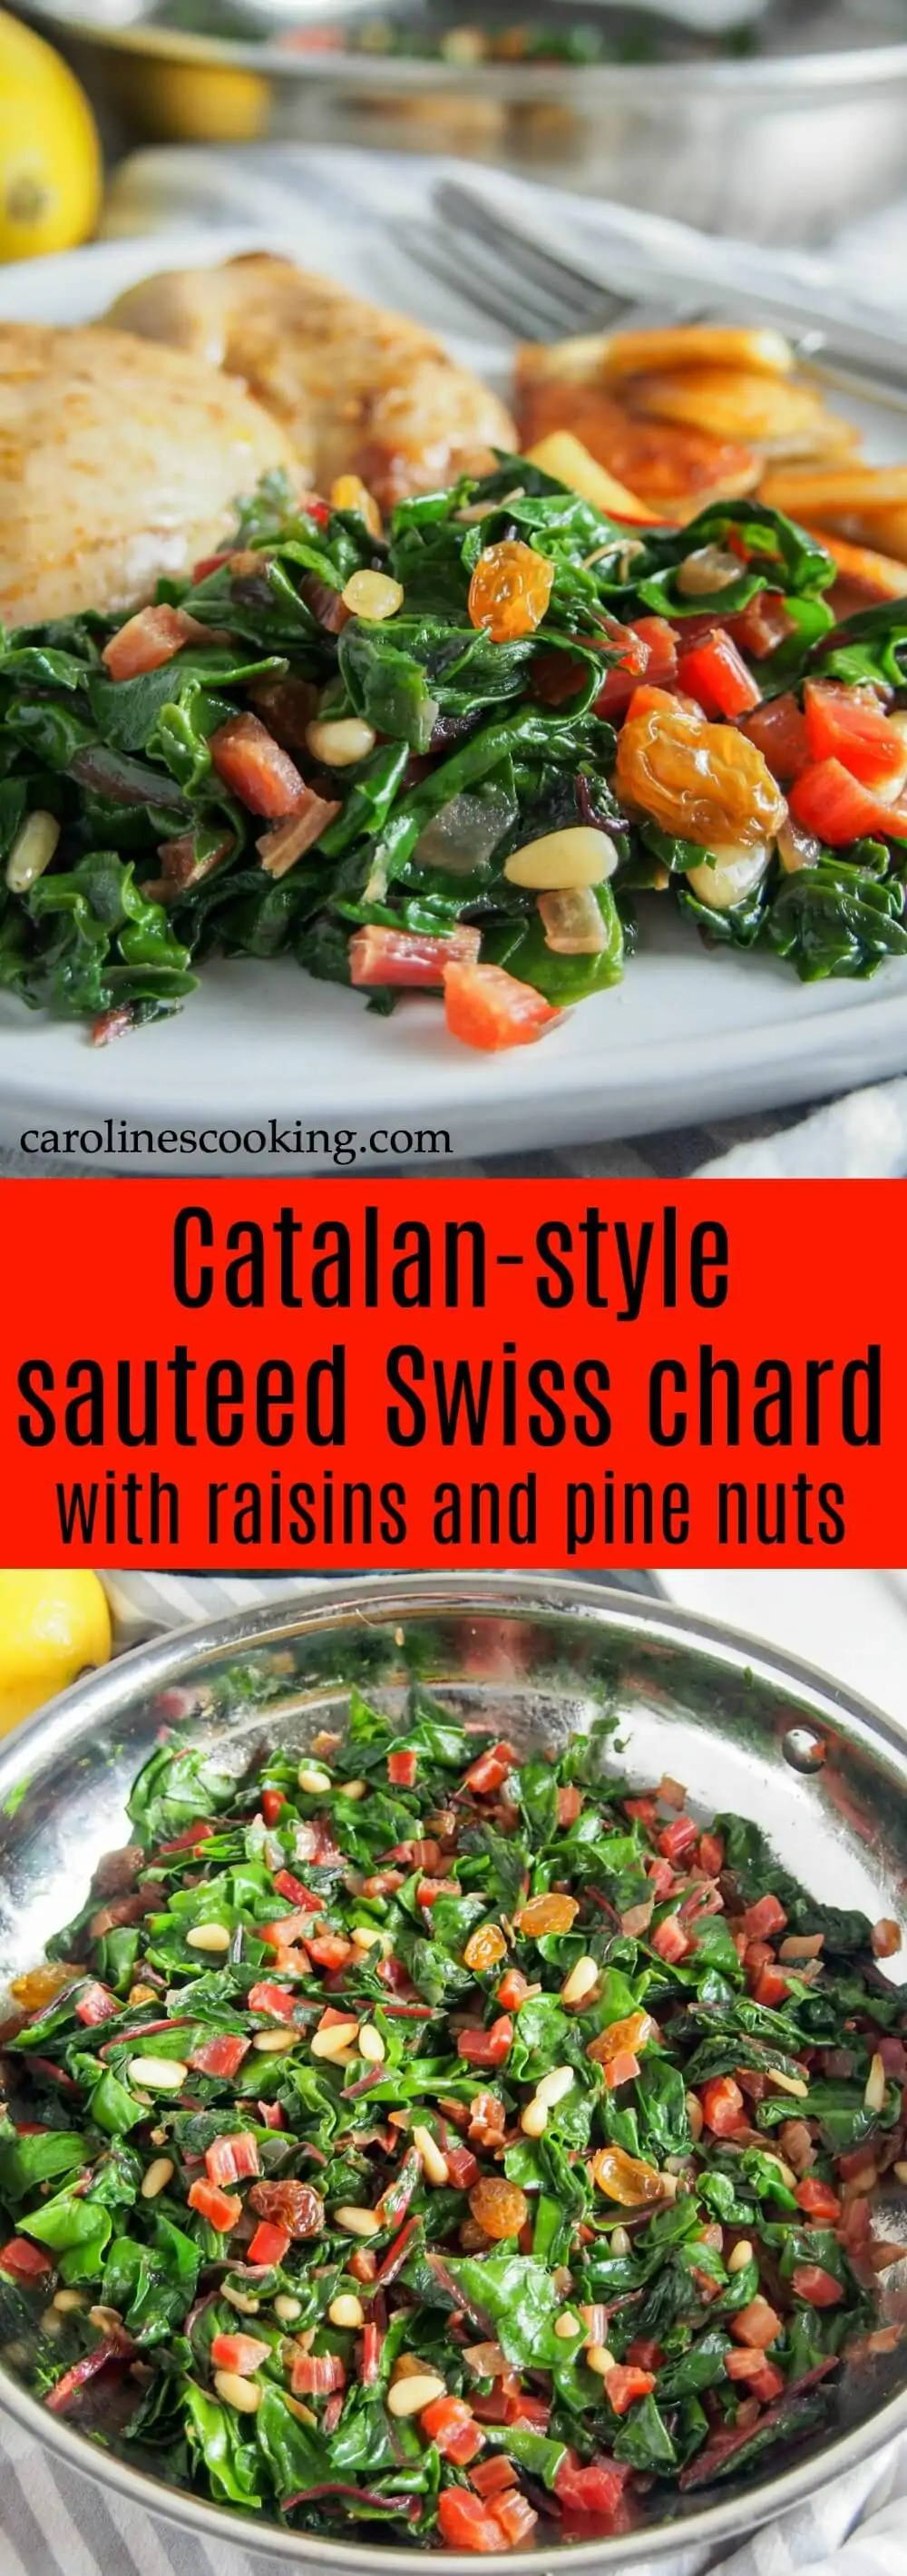 Catalan-style sauteed Swiss chard with raisins and pine nuts - Whether you're a greens-sceptic or greens lover, this Catalan-style sauteed Swiss chard with raisins and pine nuts will win you over. It's an easy and delicious side dish, that's good for you too. Vegan & gluten free. #chard #vegetarian #vegan